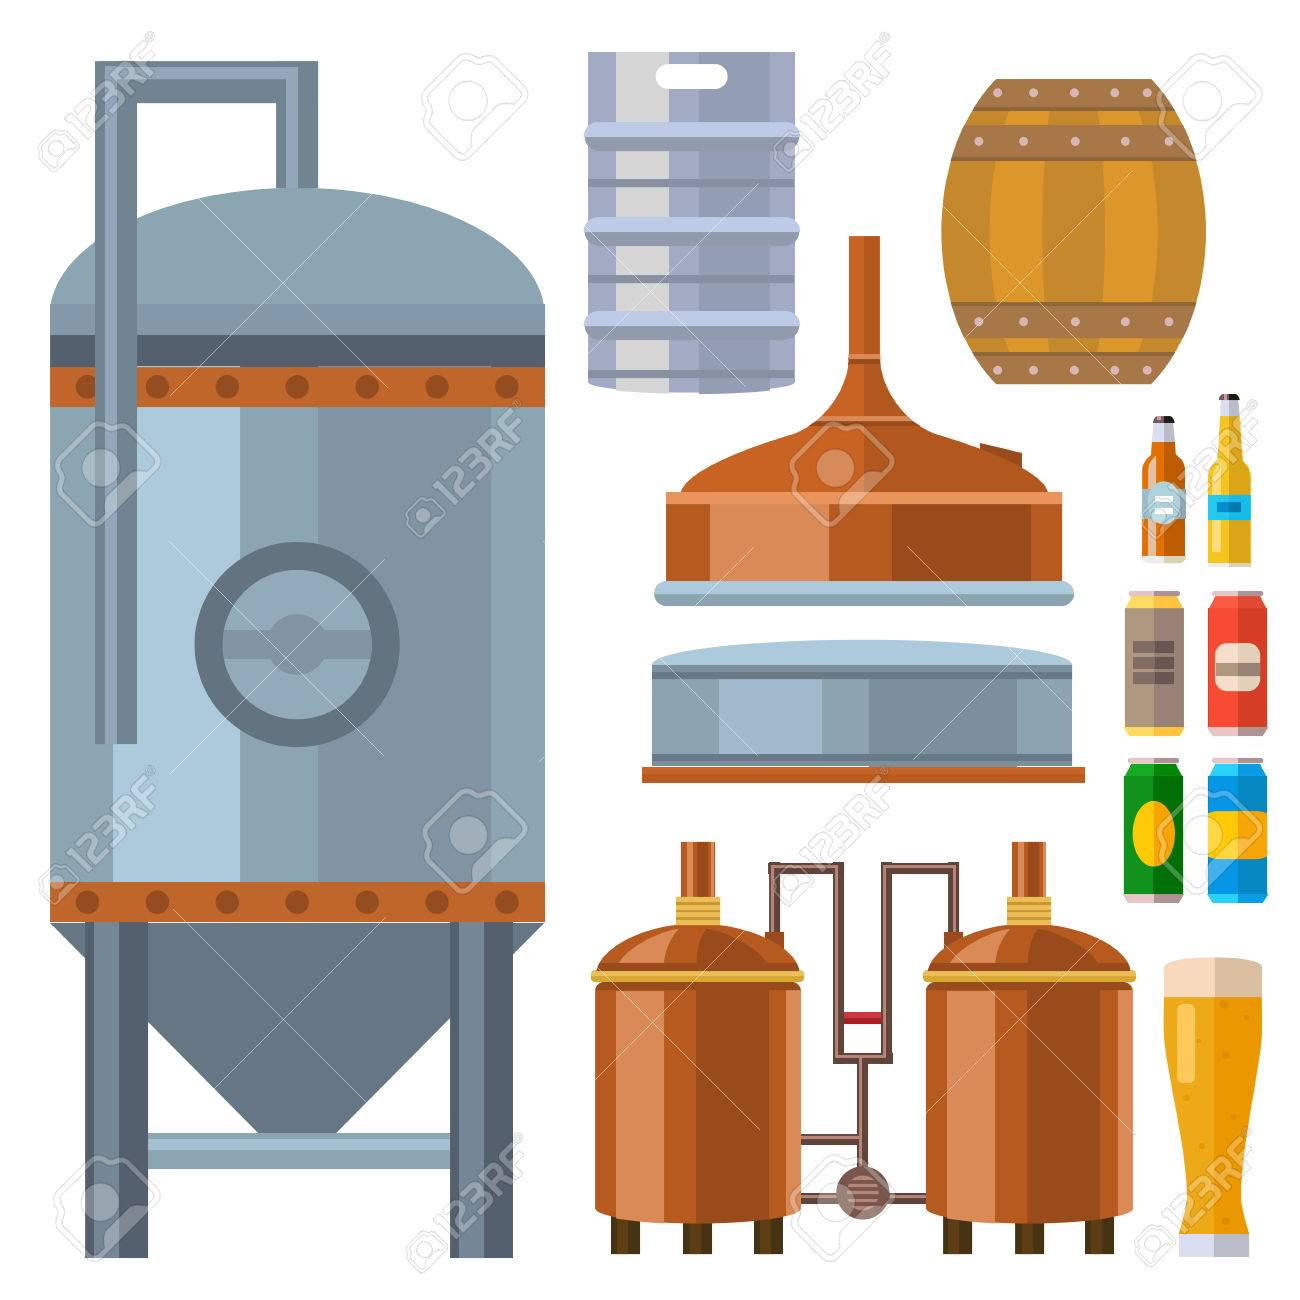 Beer brewing process alcohol factory production equipment mashing